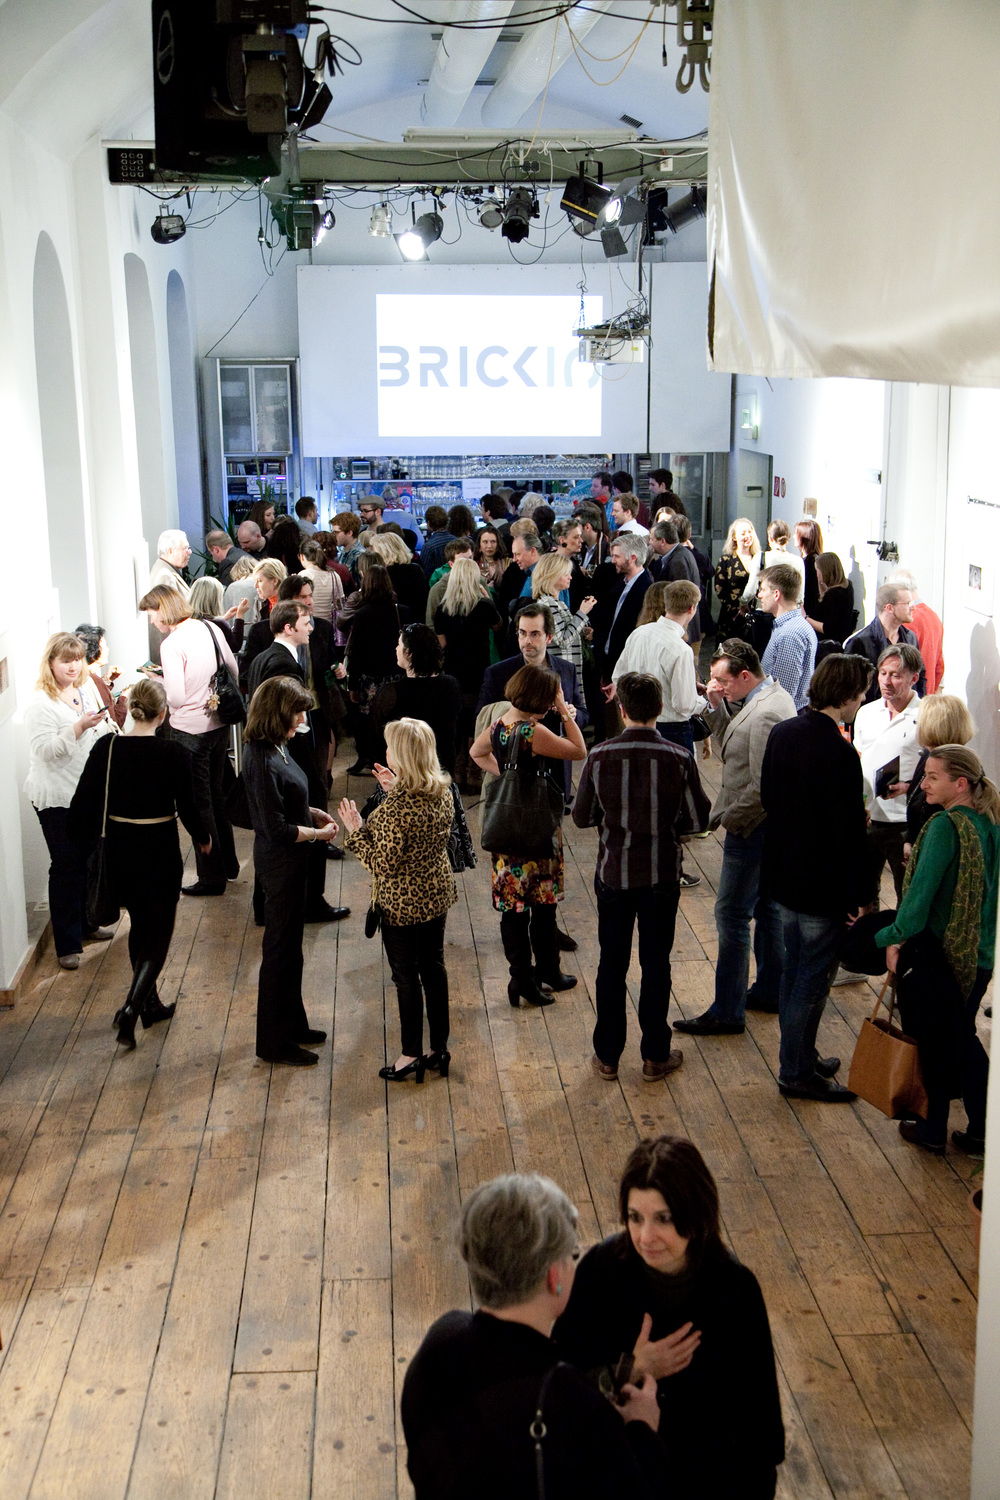 Bar scene at Brick-5, 2014